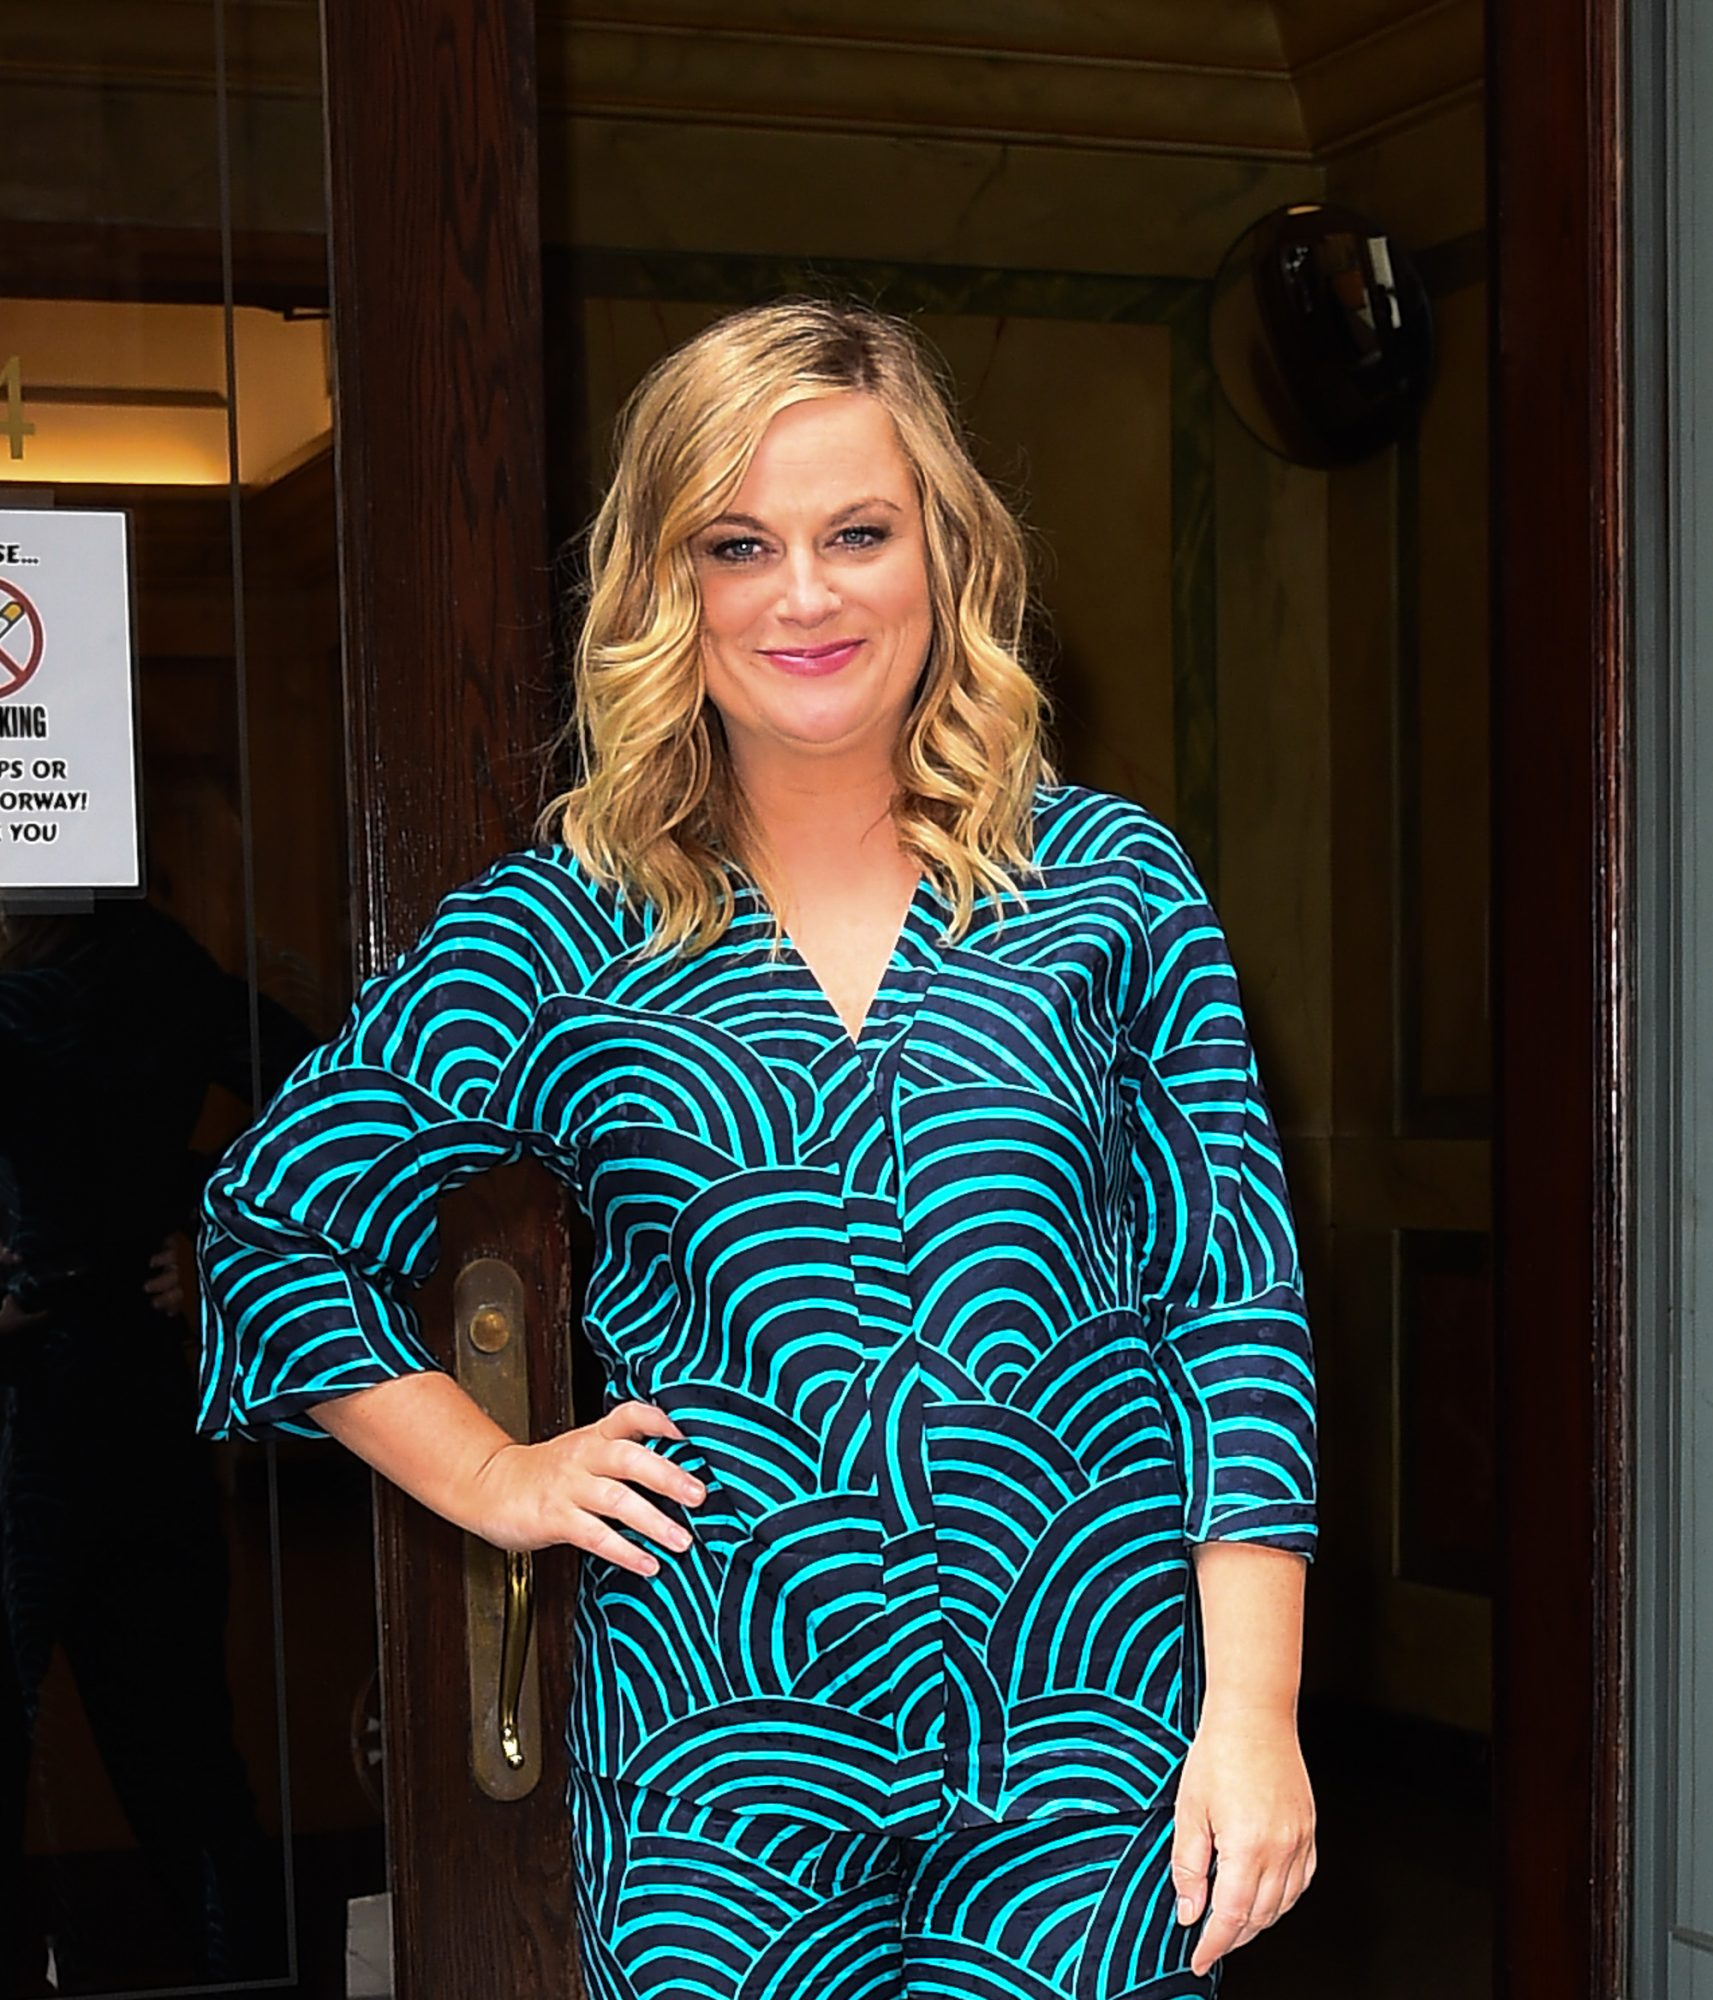 Amy Poehler to Direct, Star in and Produce Netflix Comedy 'Wine Country'